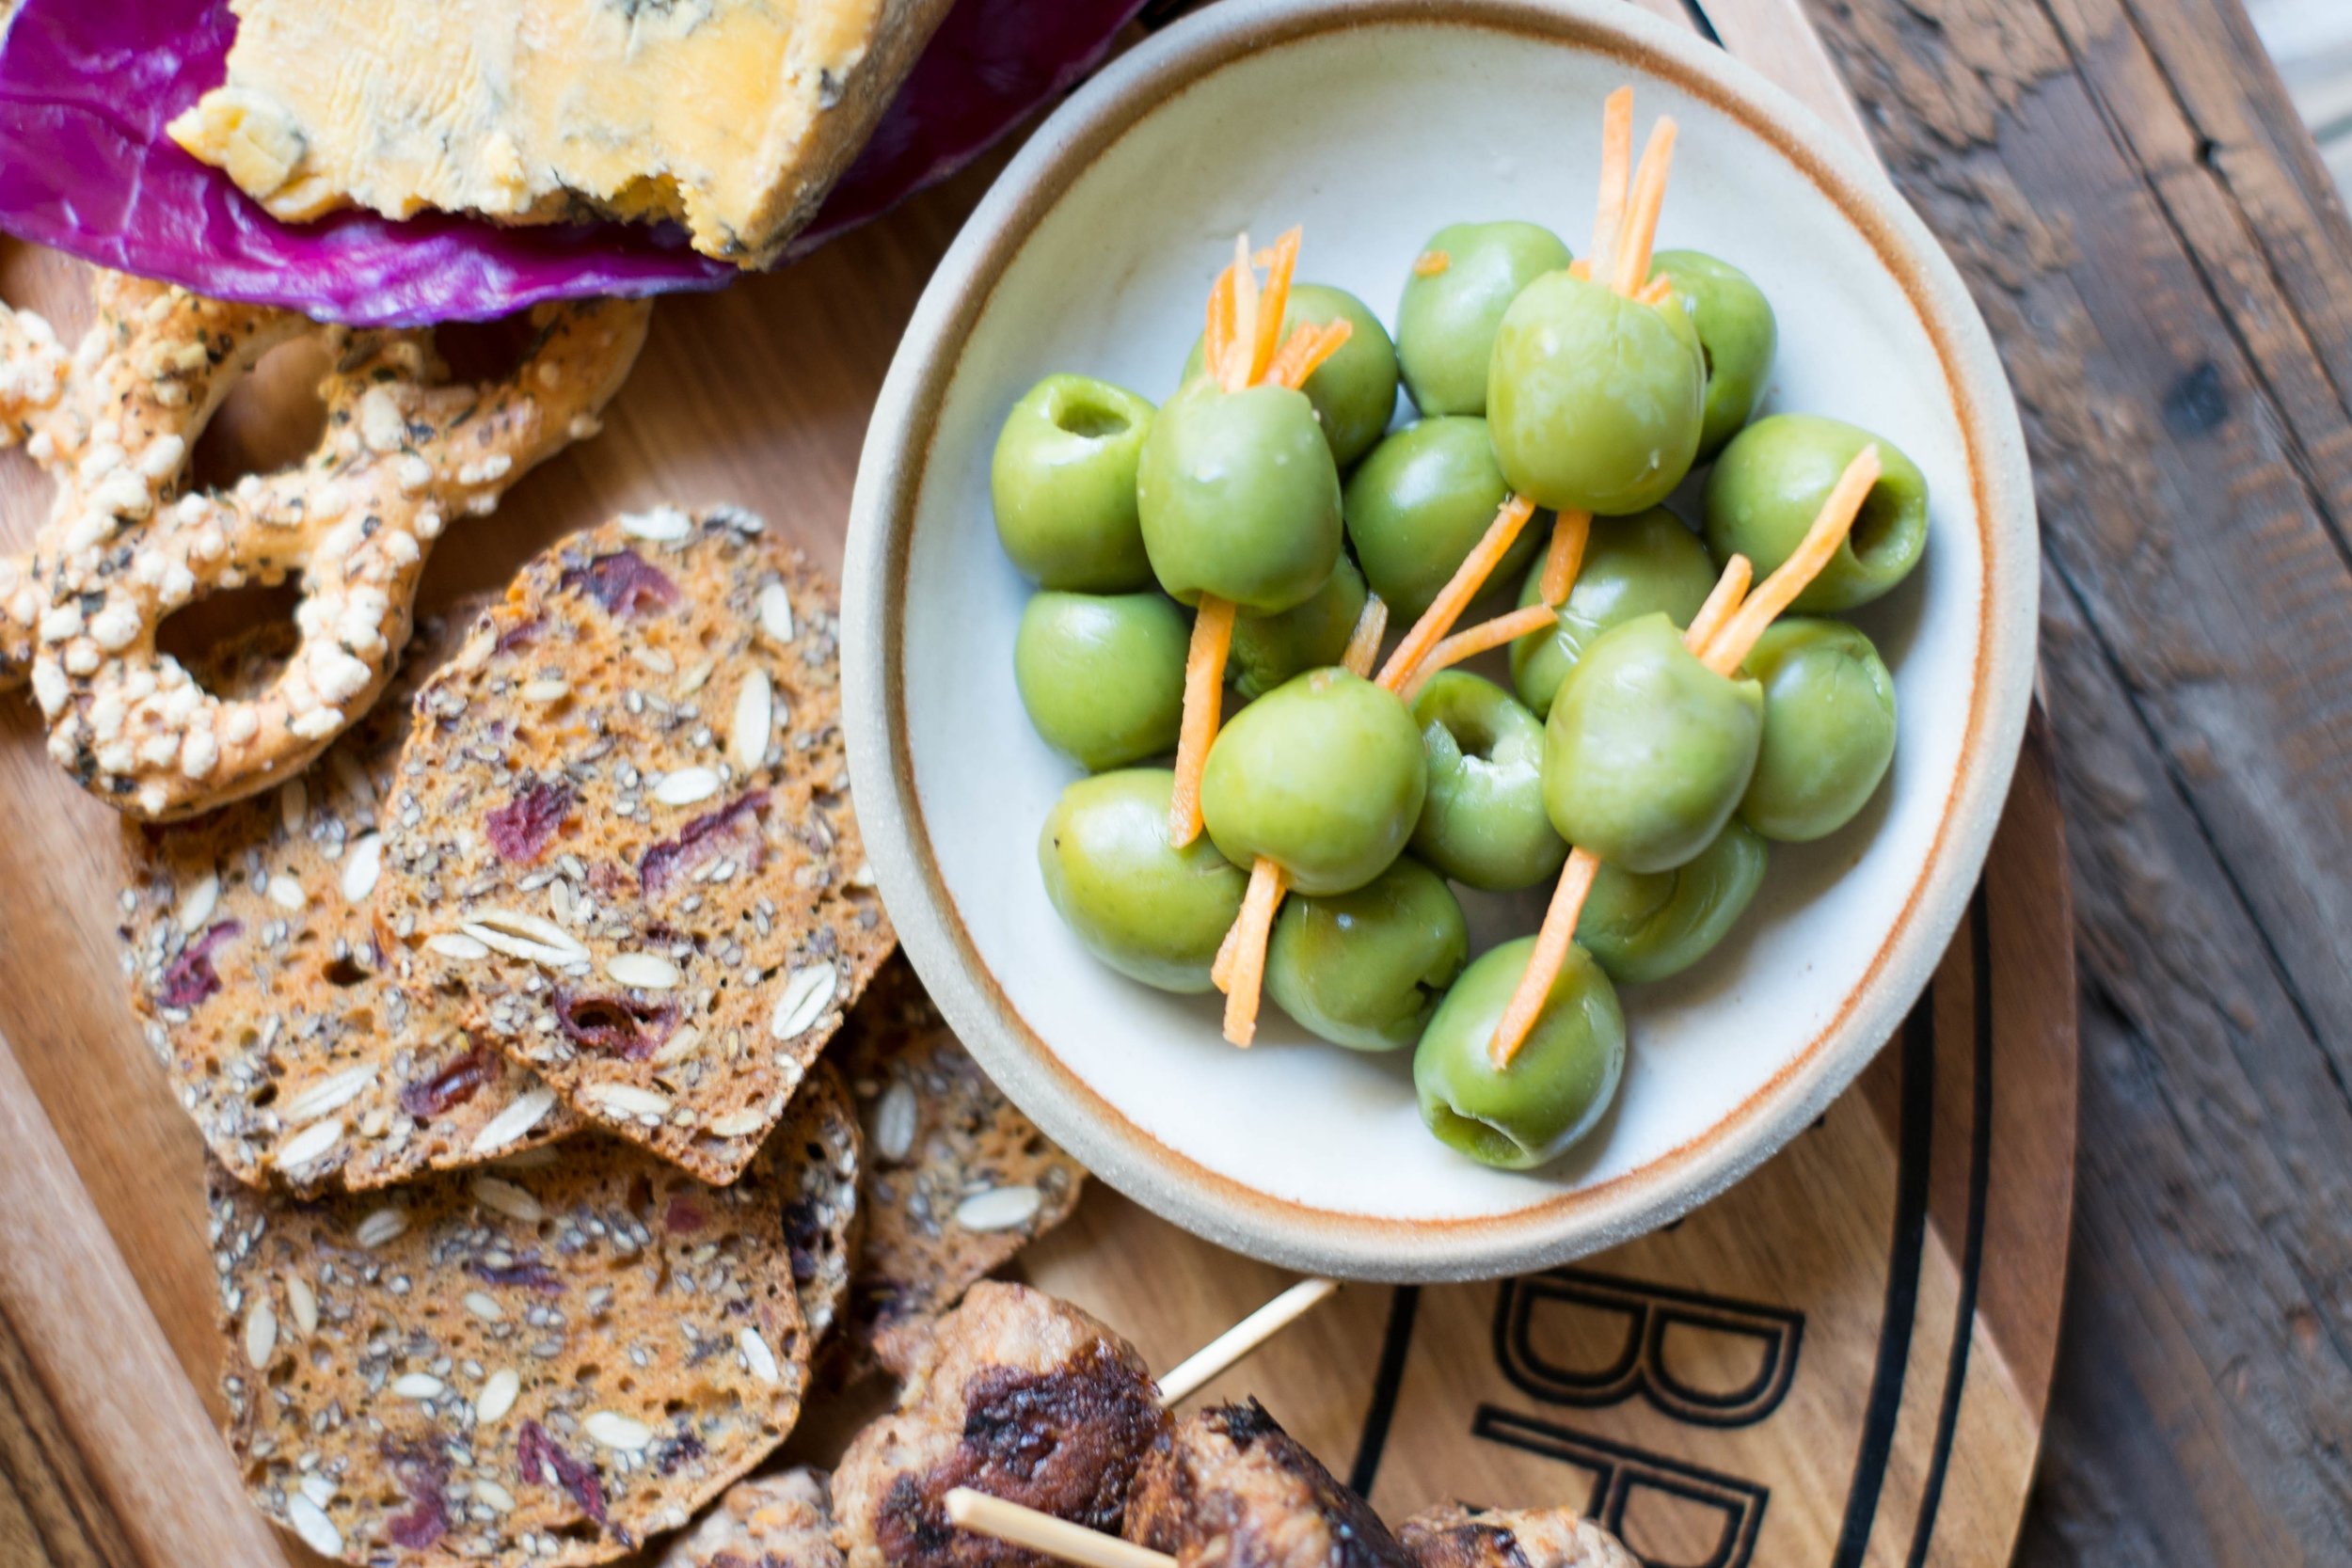 Olives with carrot for a fancy twist